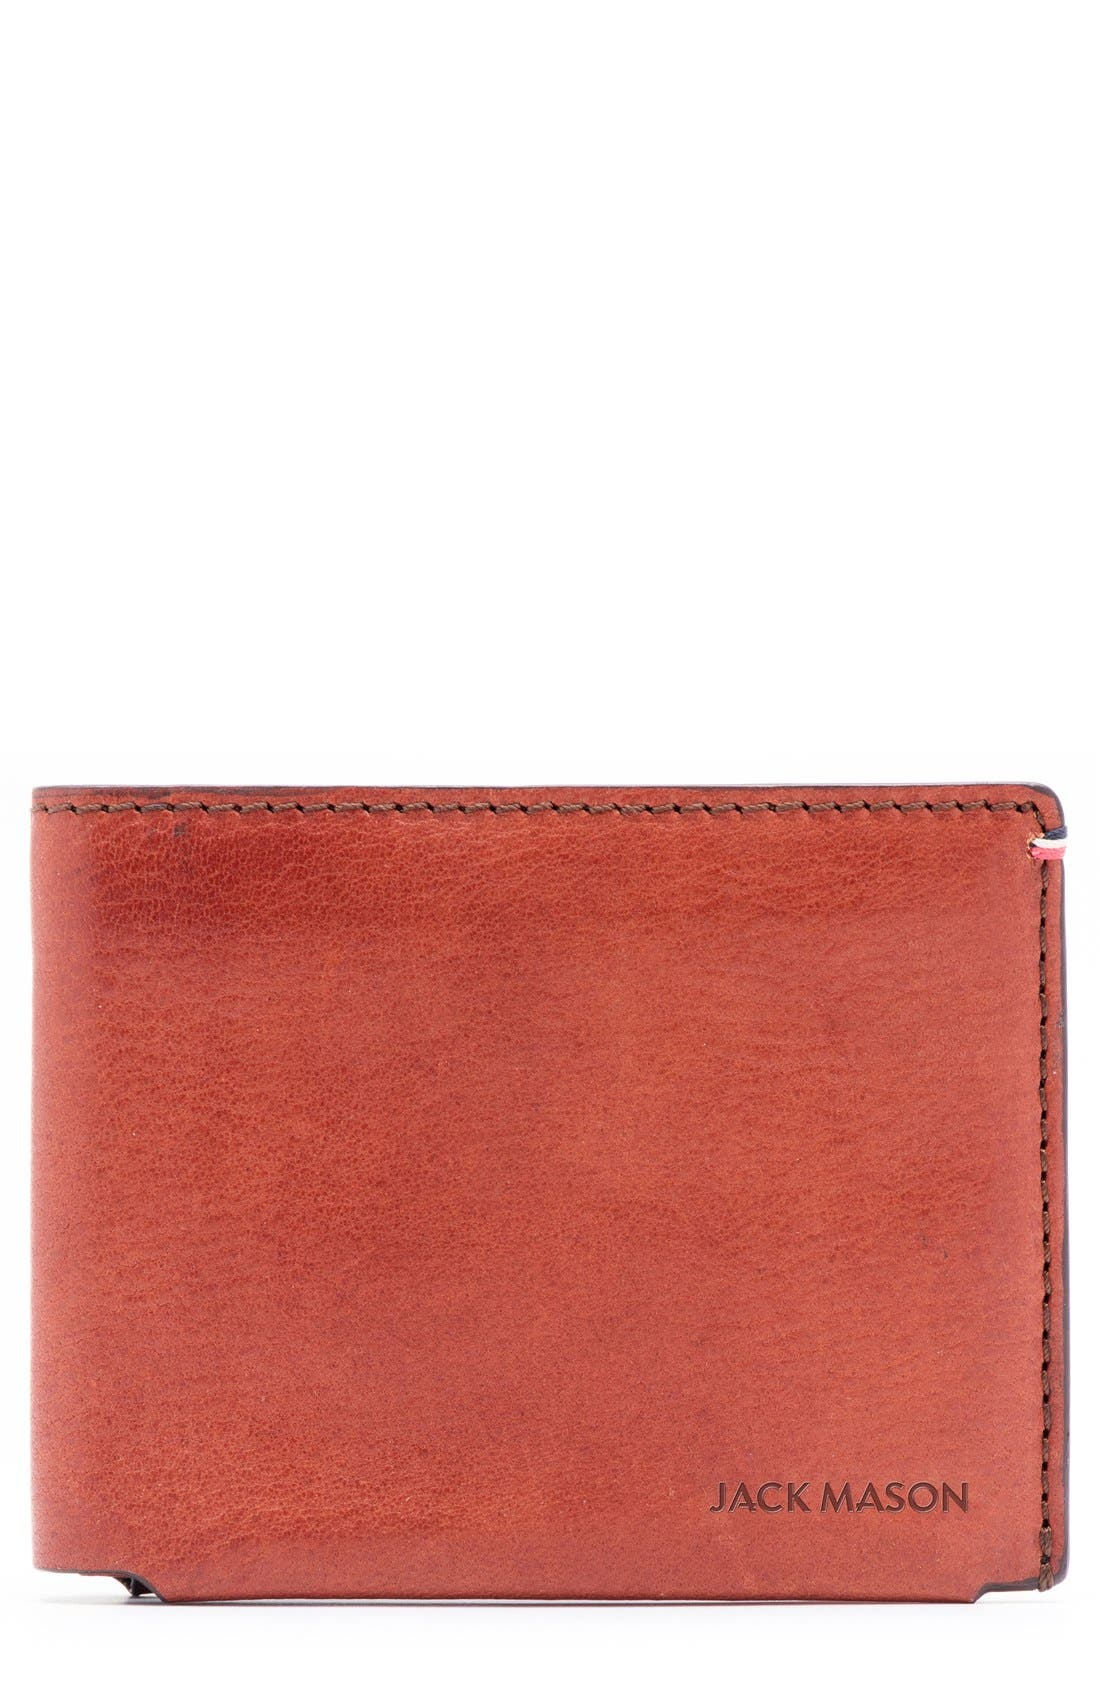 Alternate Image 1 Selected - Jack Mason Pebbled Leather Wallet